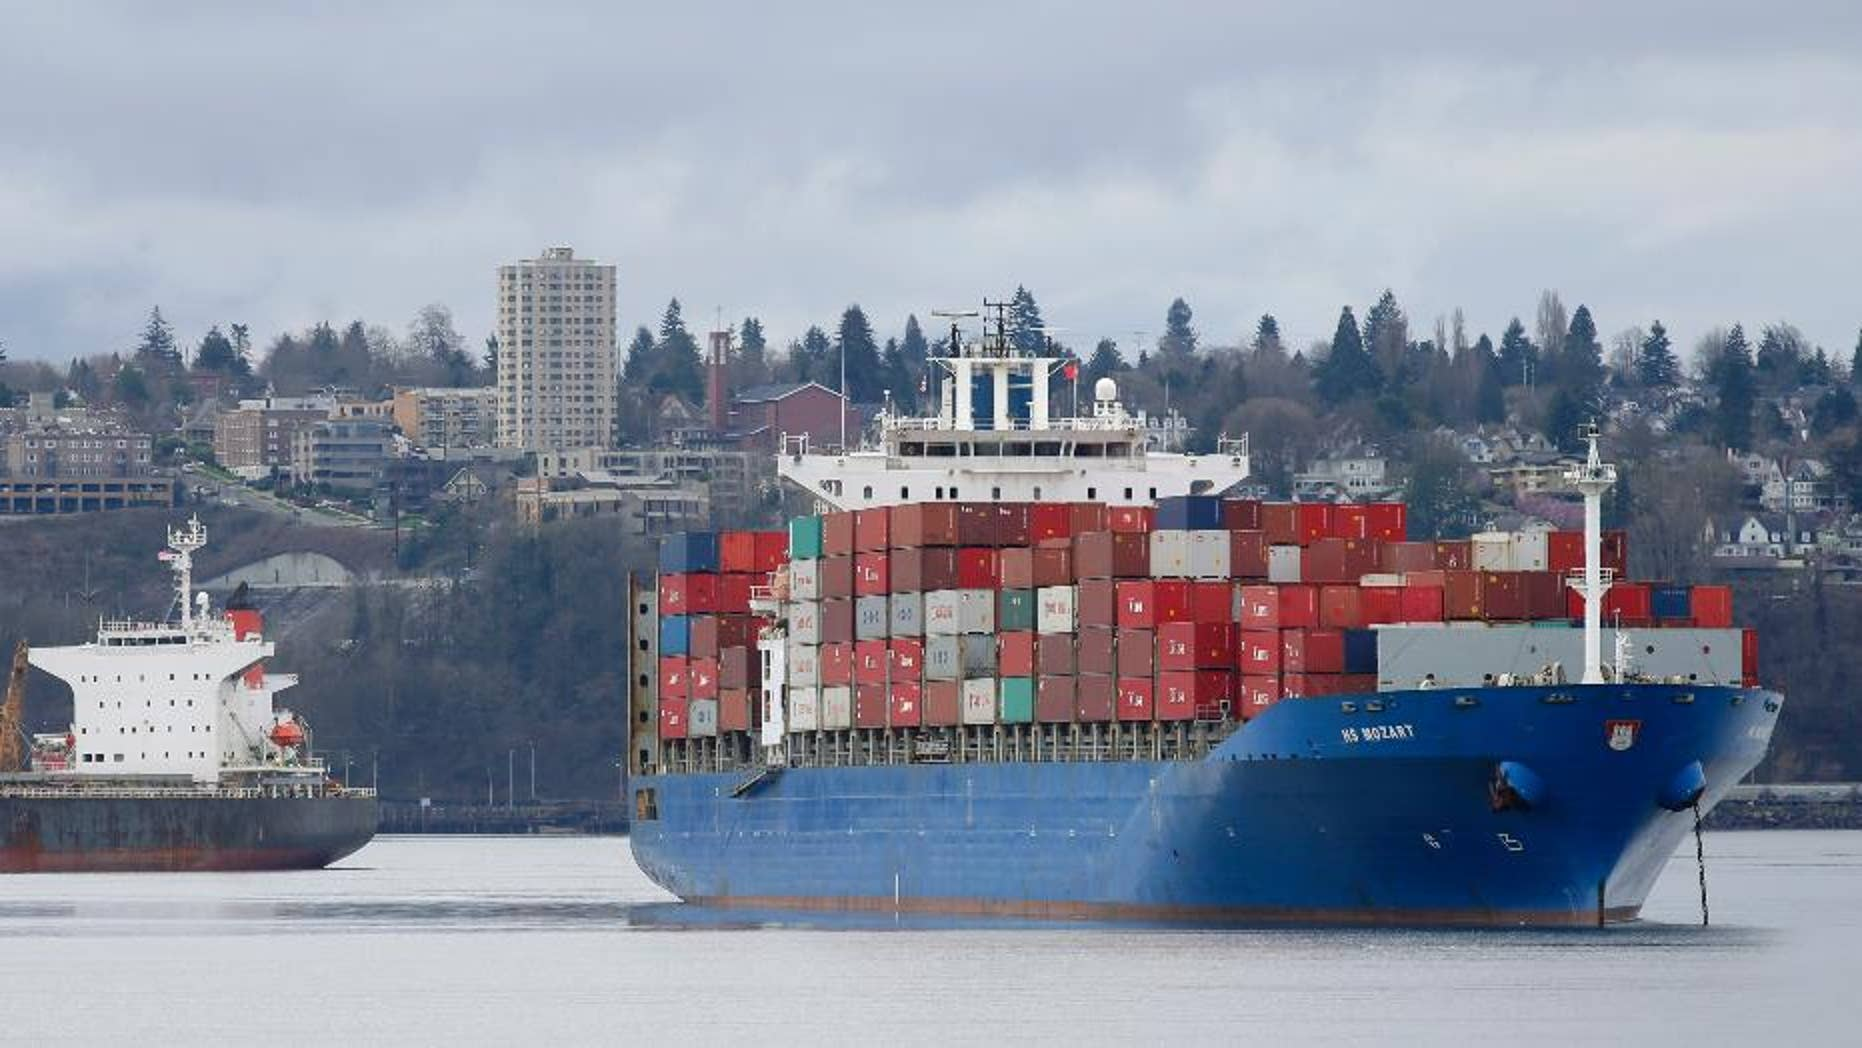 FILE - In this Feb. 20, 2015 file photo, the HS Mozart cargo ship, right, operated by the German shipping company Hansa Shipping, sits anchored in Commencement Bay near the Port of Tacoma, Wash. The Commerce Department reports on the U.S. trade gap for July on Thursday, Sept. 3, 2015. (AP Photo/Ted S. Warren, File)